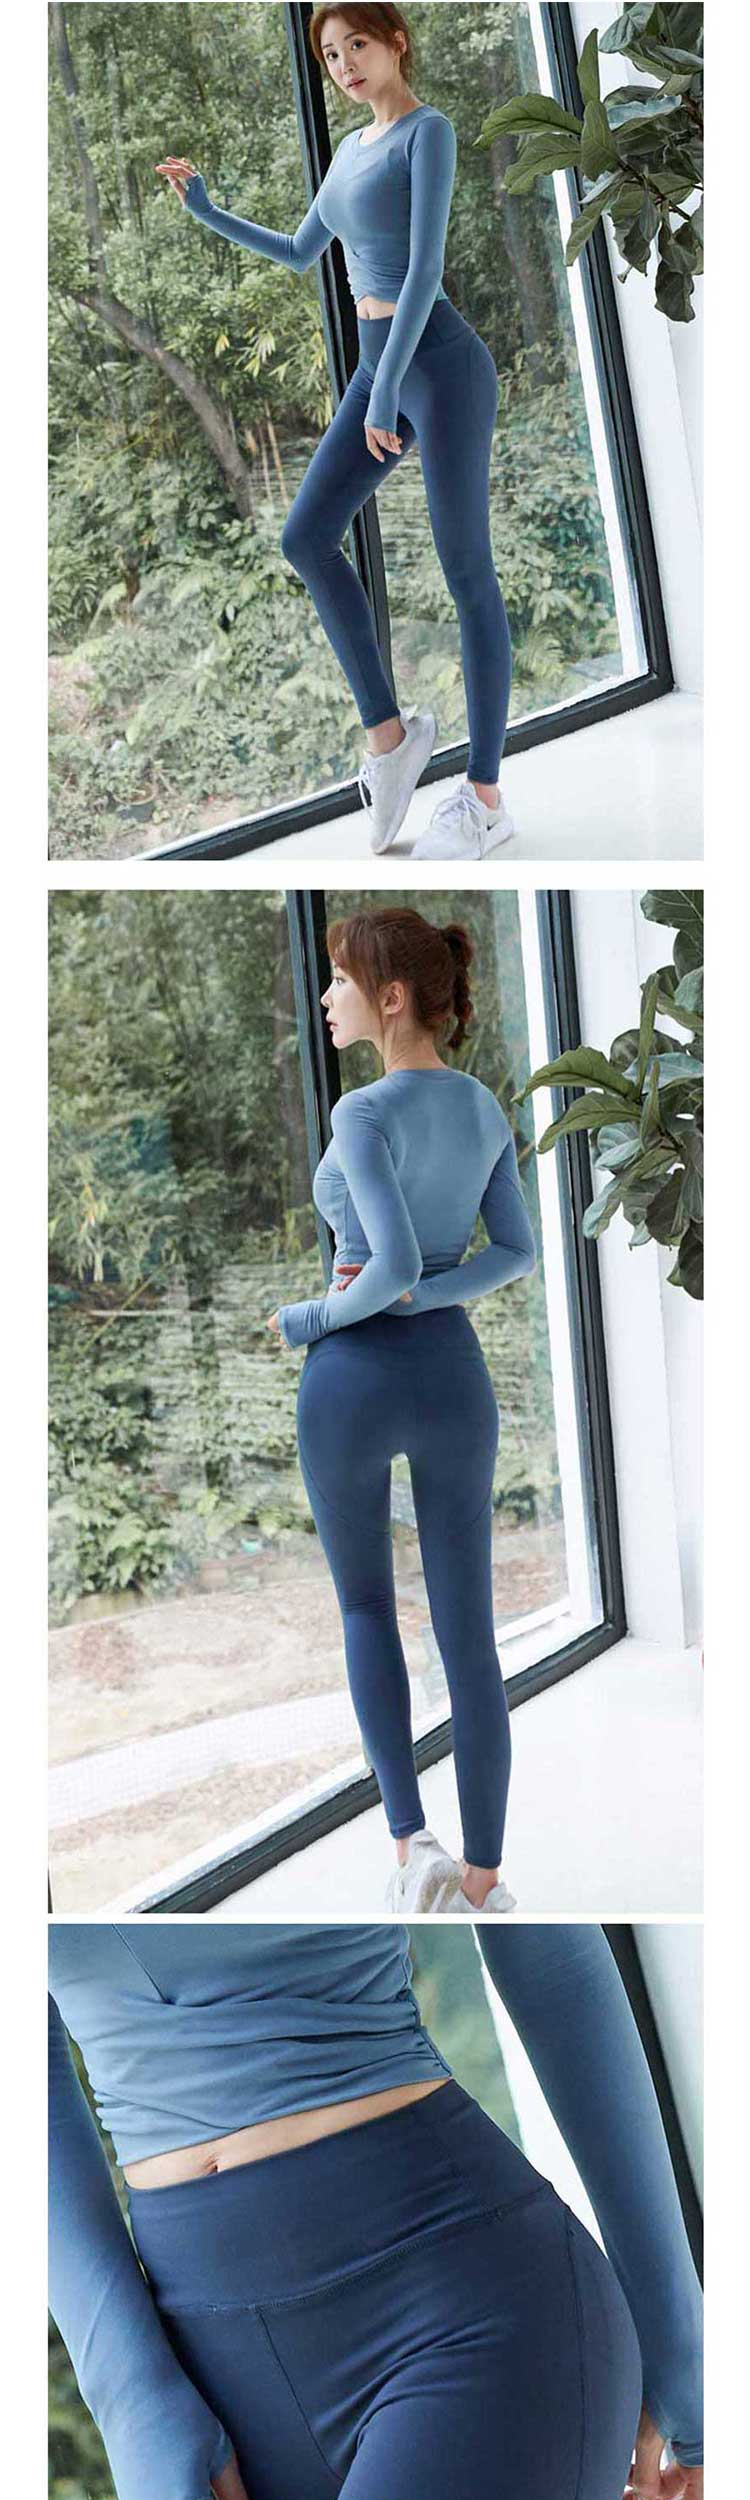 High-waisted-fitness-leggings-easy-to-hide-the-waist-over-fat-but-not-dropping--the-crotch-1